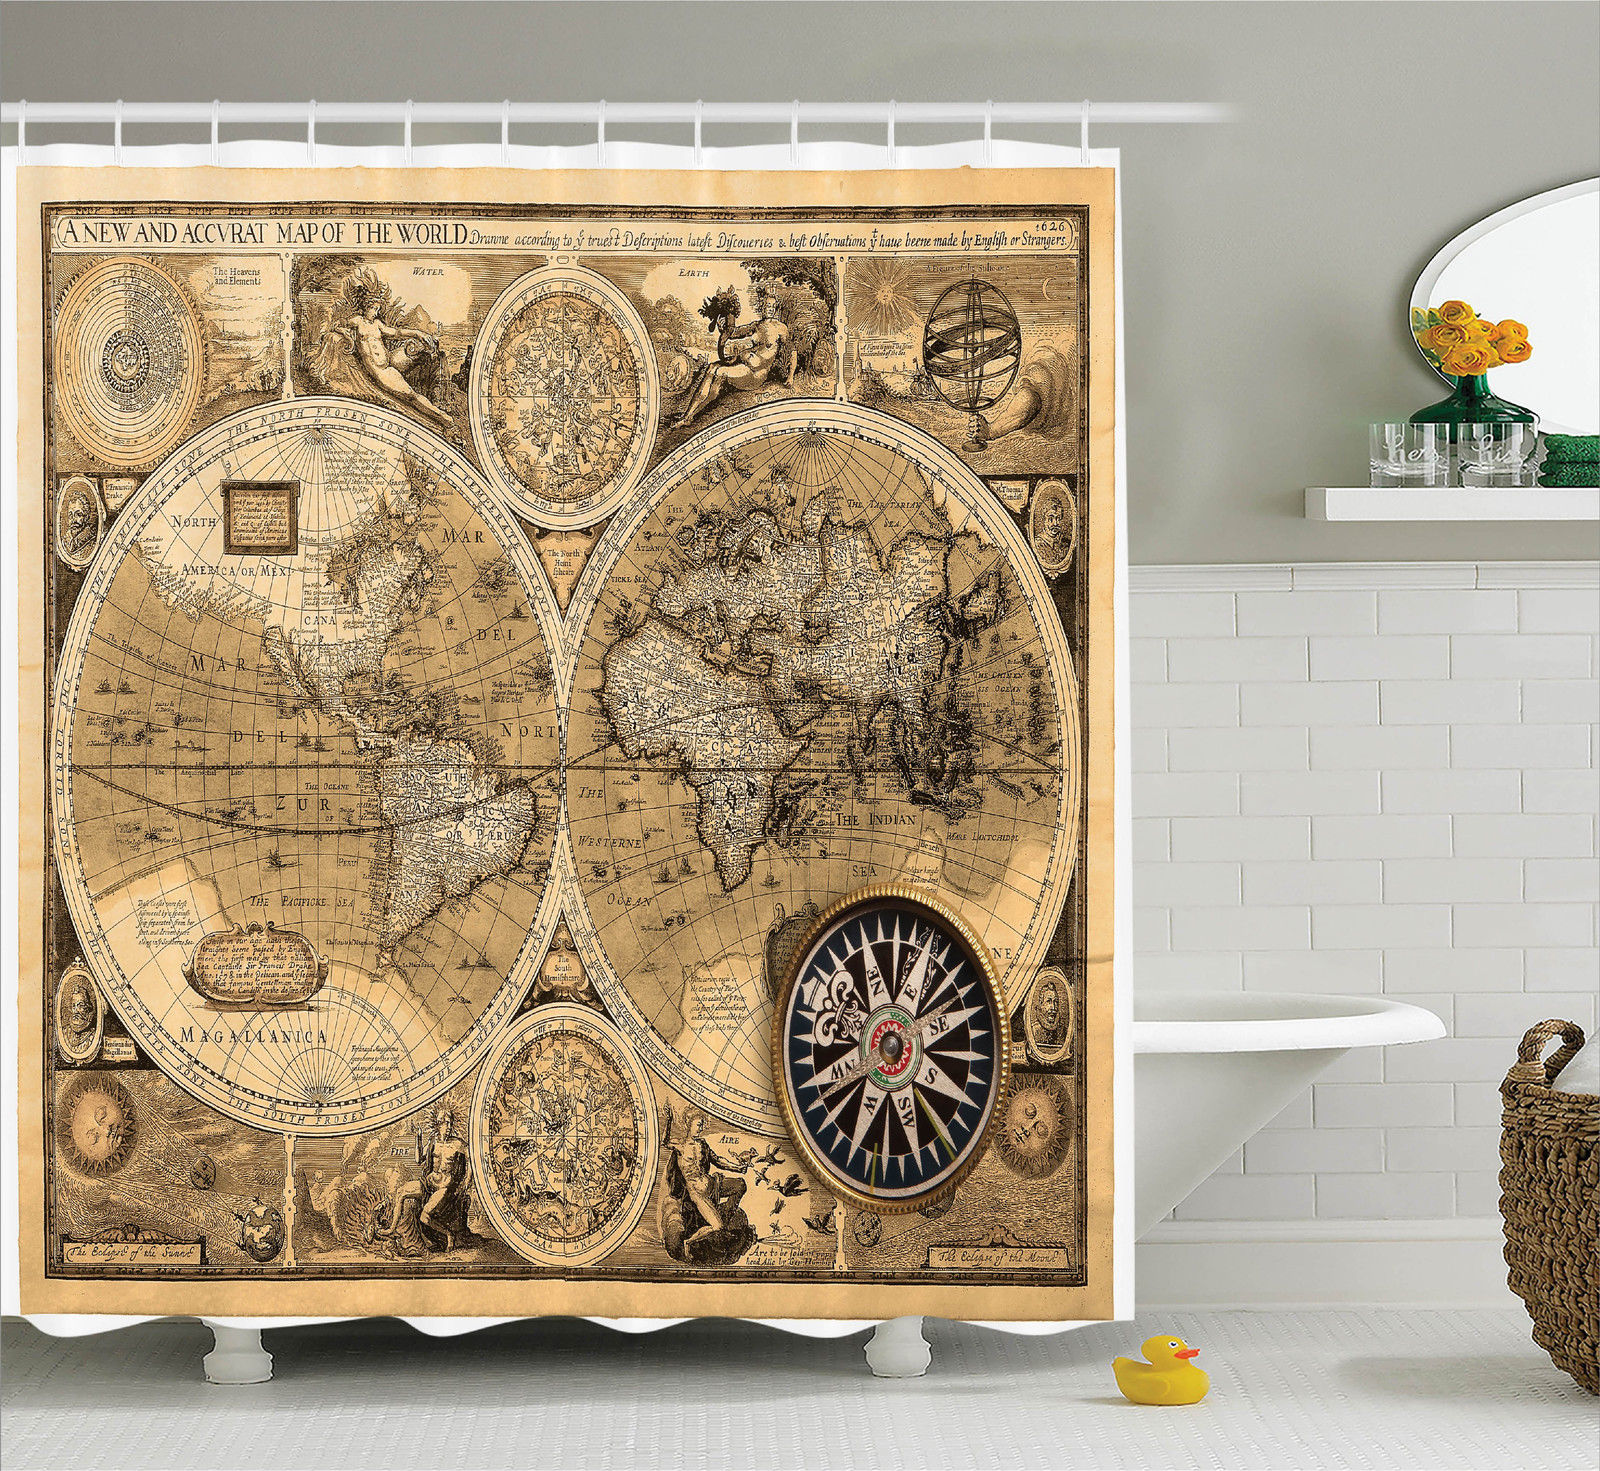 Wanderlust Decor Old Map (1626) A New And Accvrat Map Of The World Historical Manuscript, Bathroom Accessories, 69W X 84L Inches Extra Long, By Ambesonne